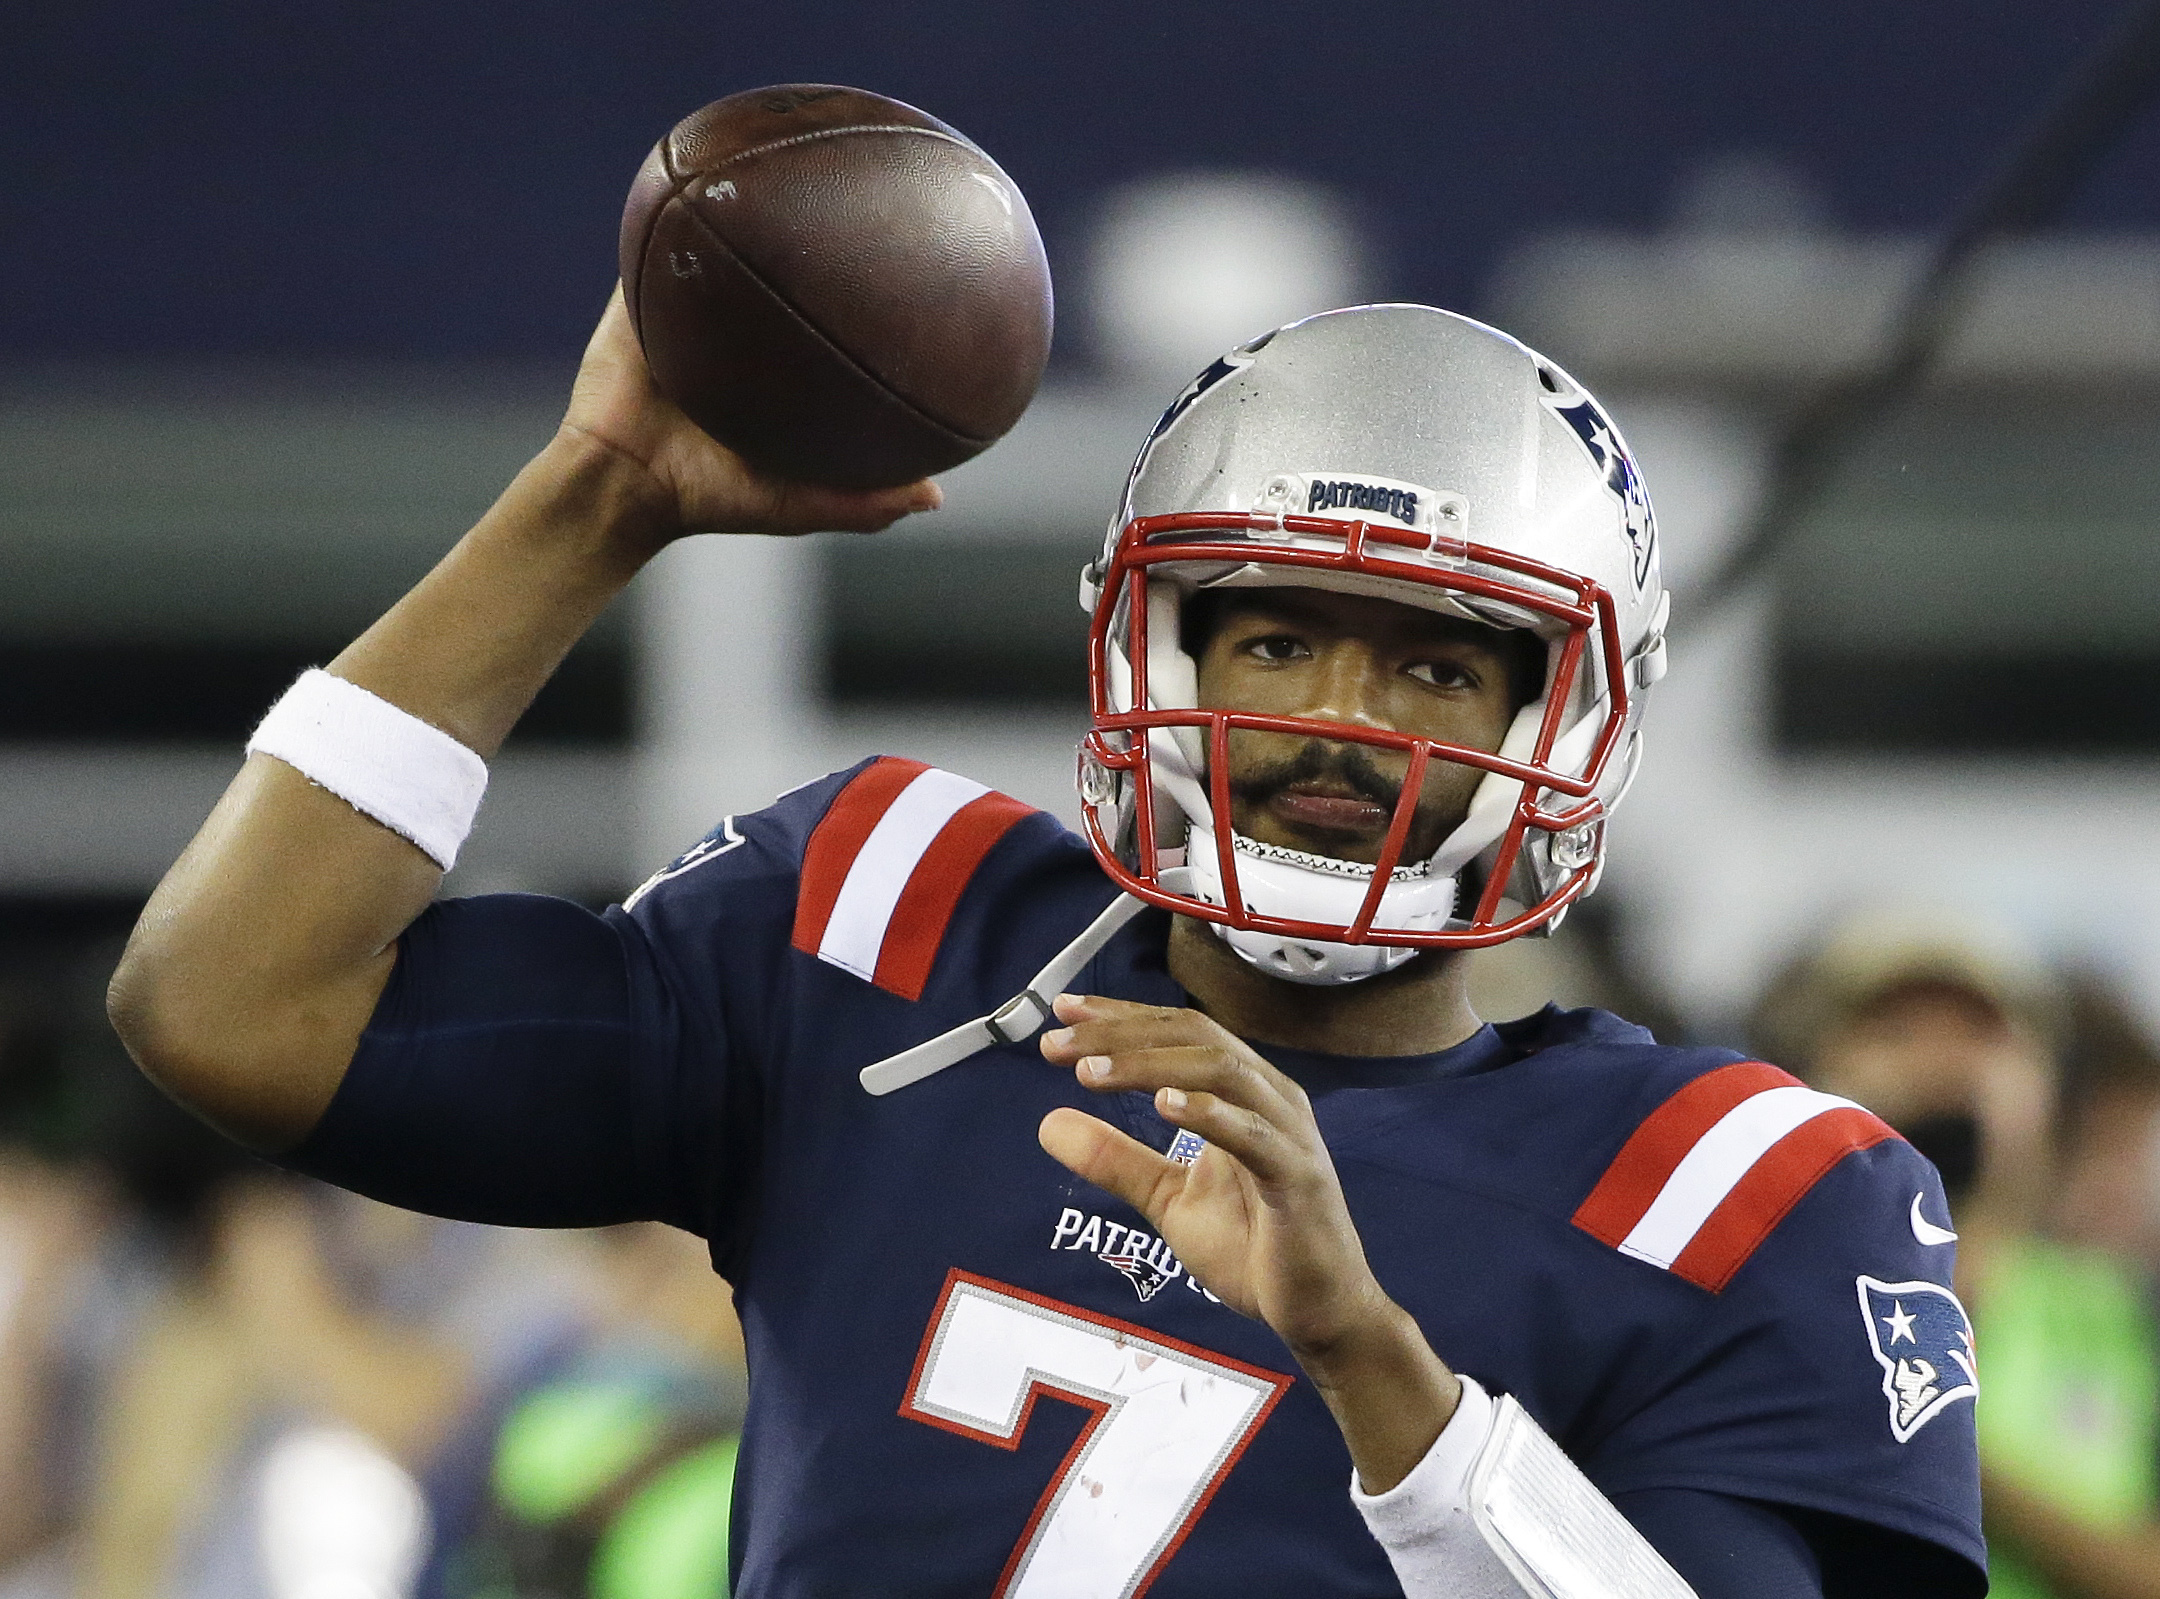 In this Thursday, Sept. 22, 2016 photo, New England Patriots quarterback Jacoby Brissett tosses the football on the sideline during the second half of an NFL football game against the Houston Texans in Foxborough, Mass. The patriots could be looking for y